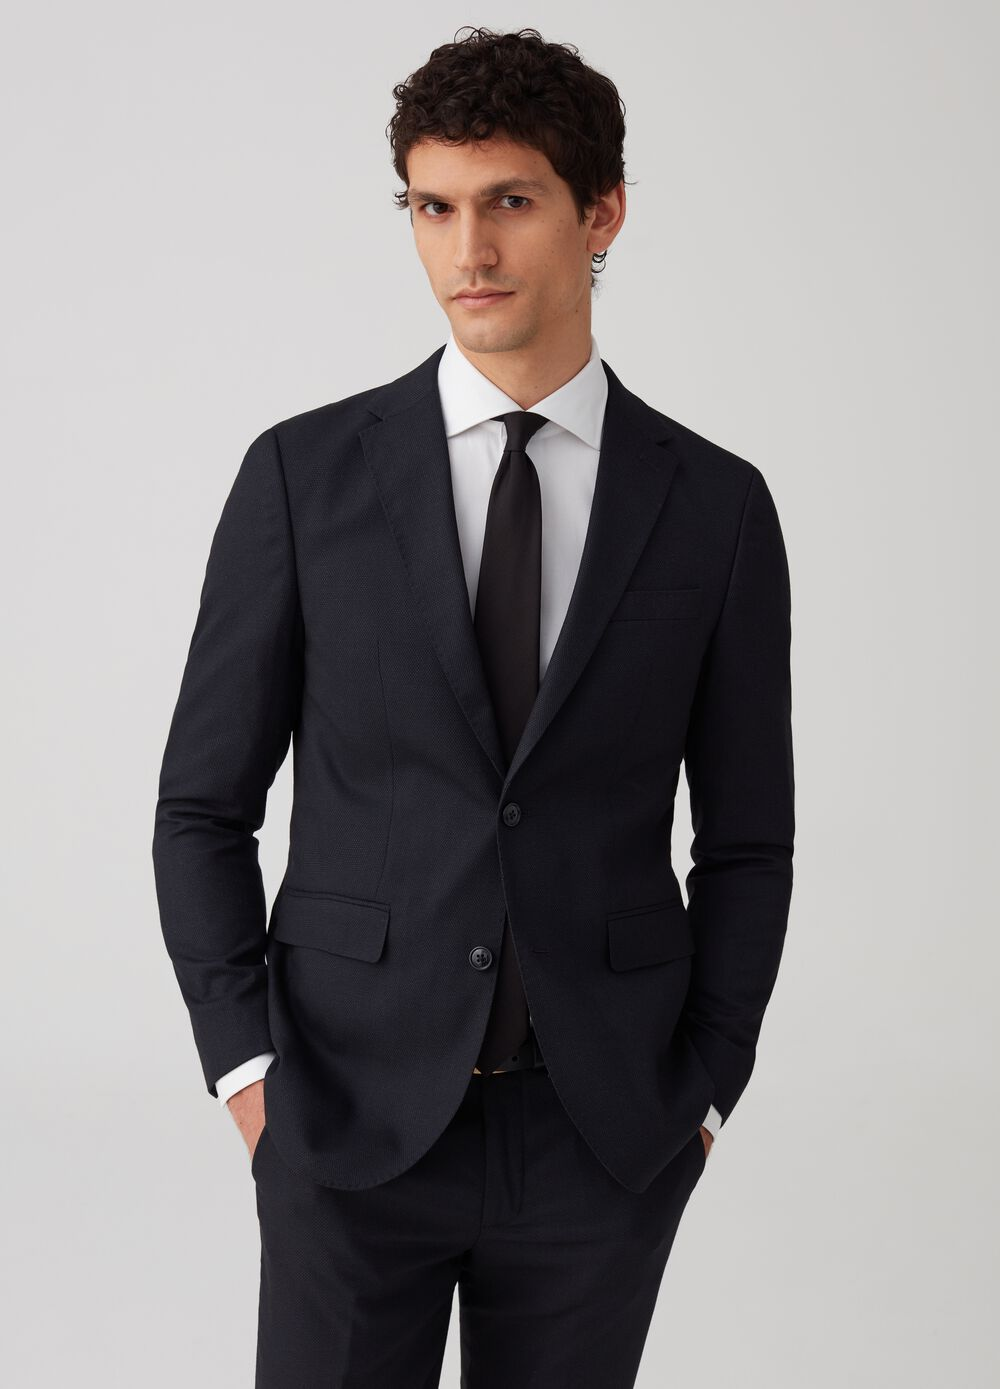 Slim-fit jacket with two button pockets.